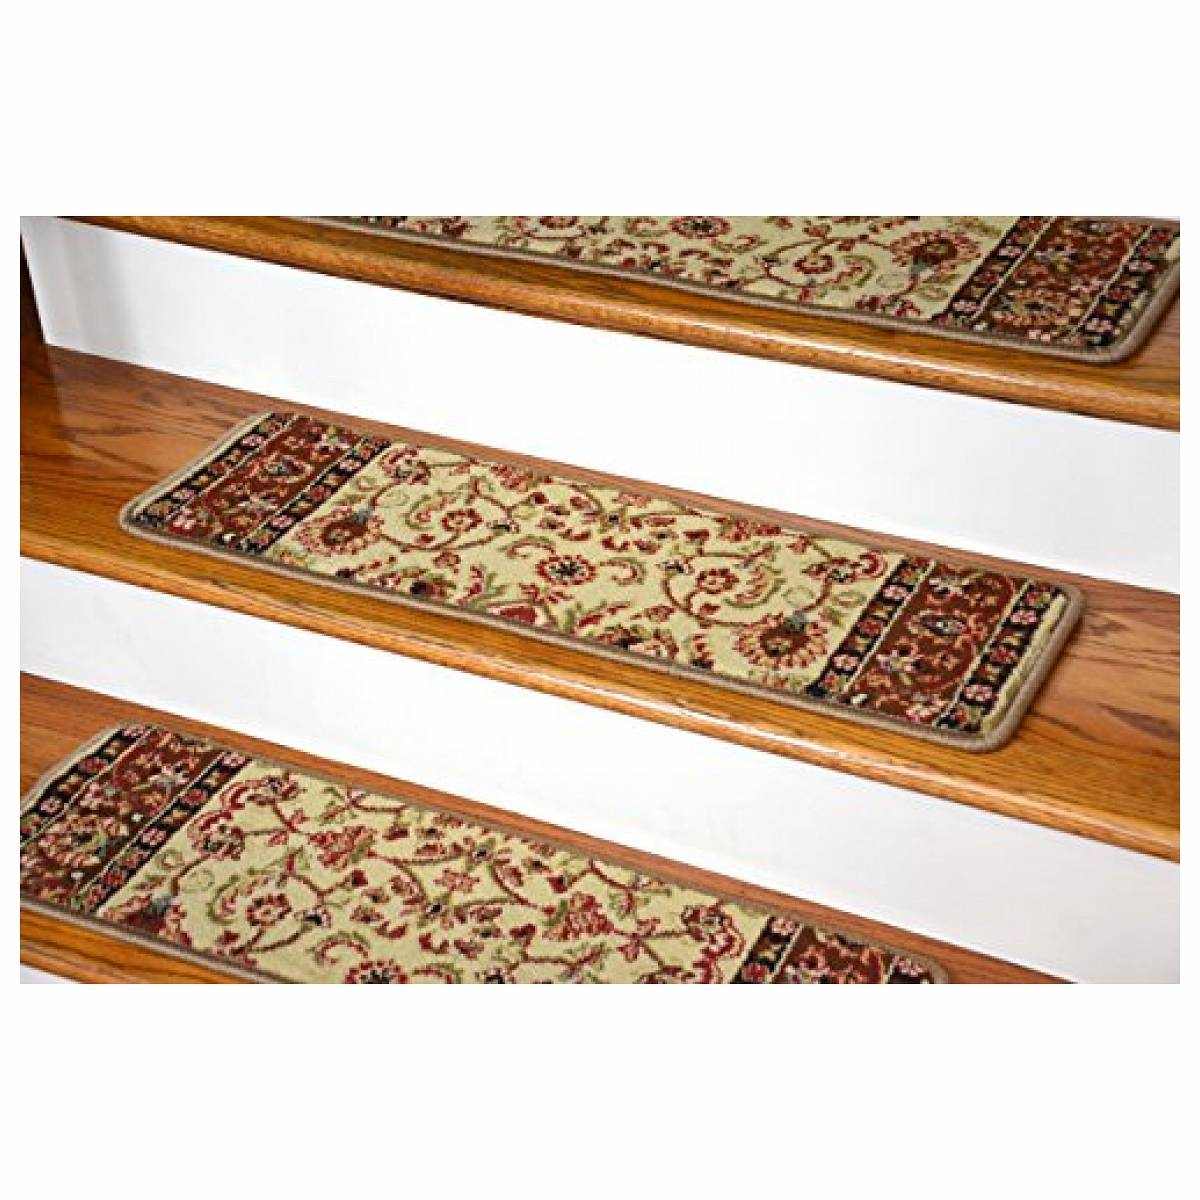 Living Room Amusing And Very Elegant Stair Treads Carpet For Your Pertaining To Stair Tread Carpet Rugs (#12 of 20)